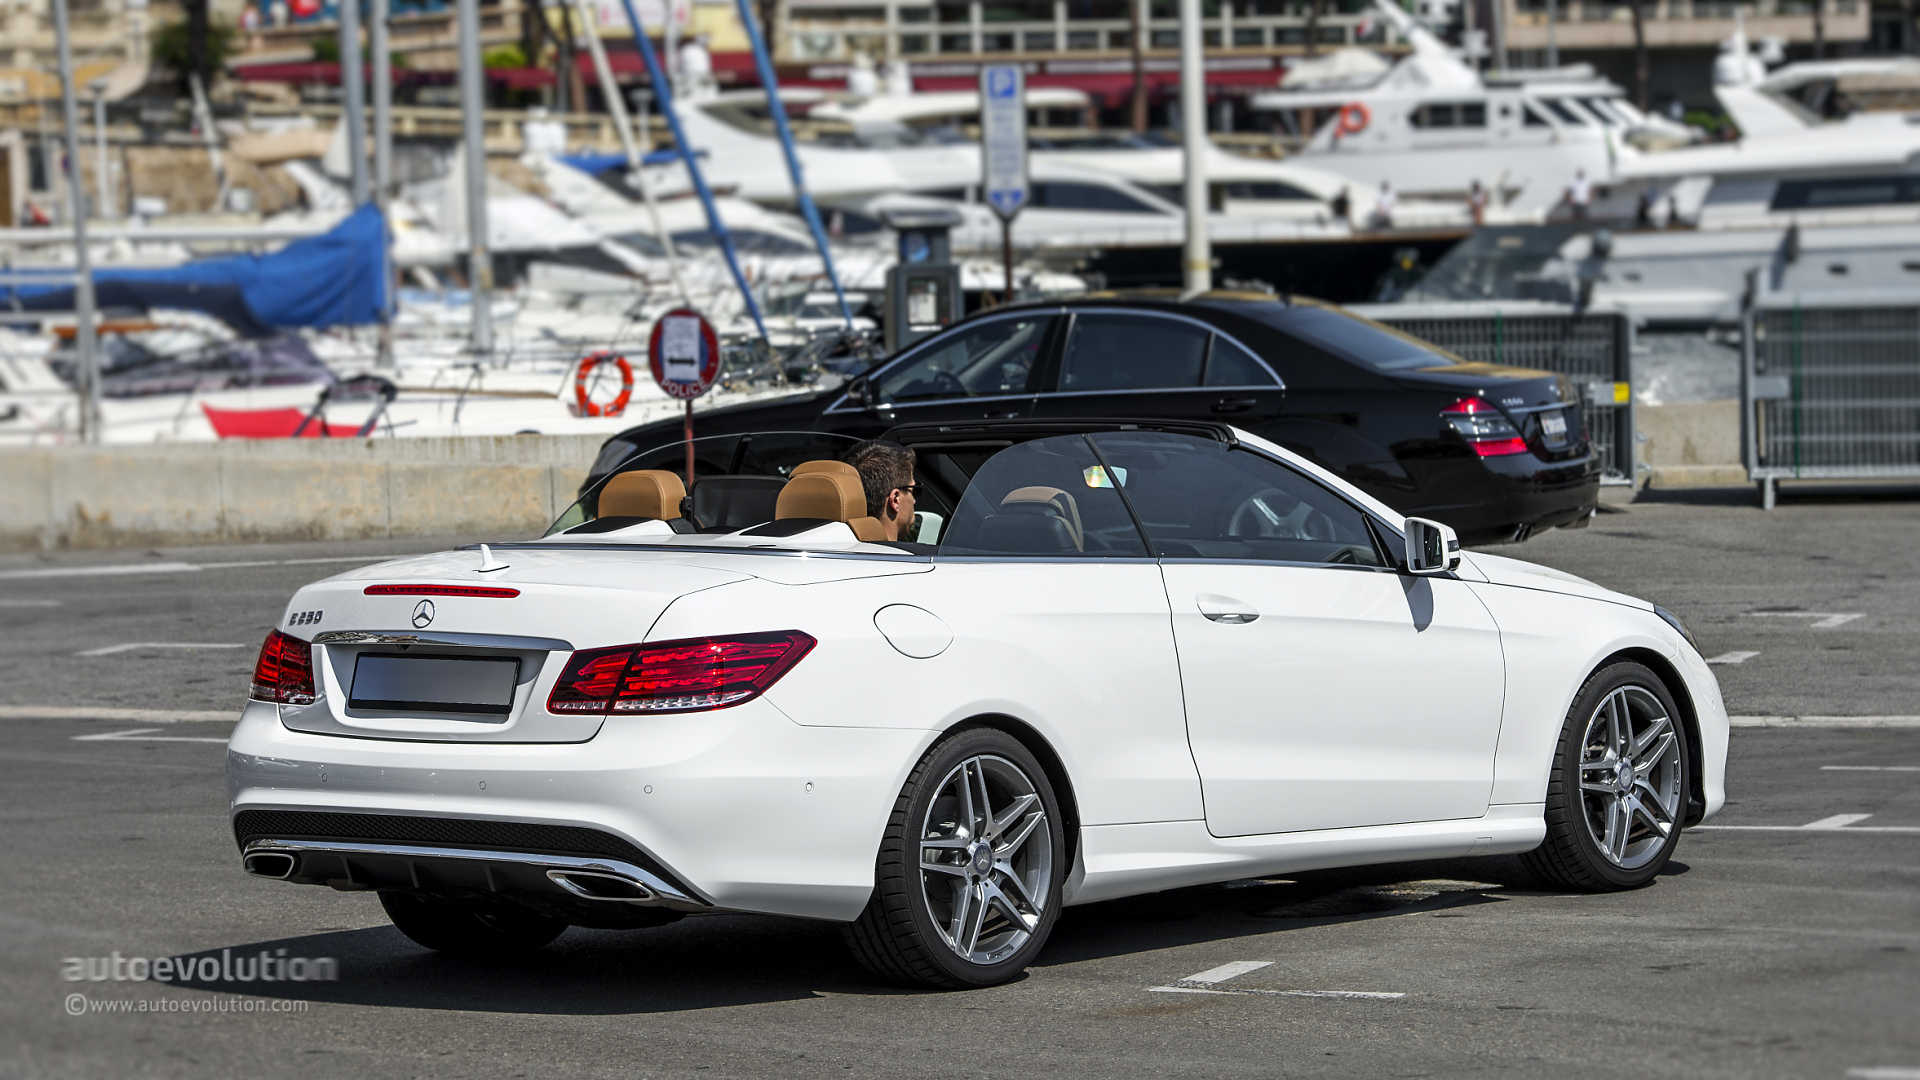 2014 mercedes benz e class cabriolet review autoevolution for 2013 mercedes benz e350 cabriolet